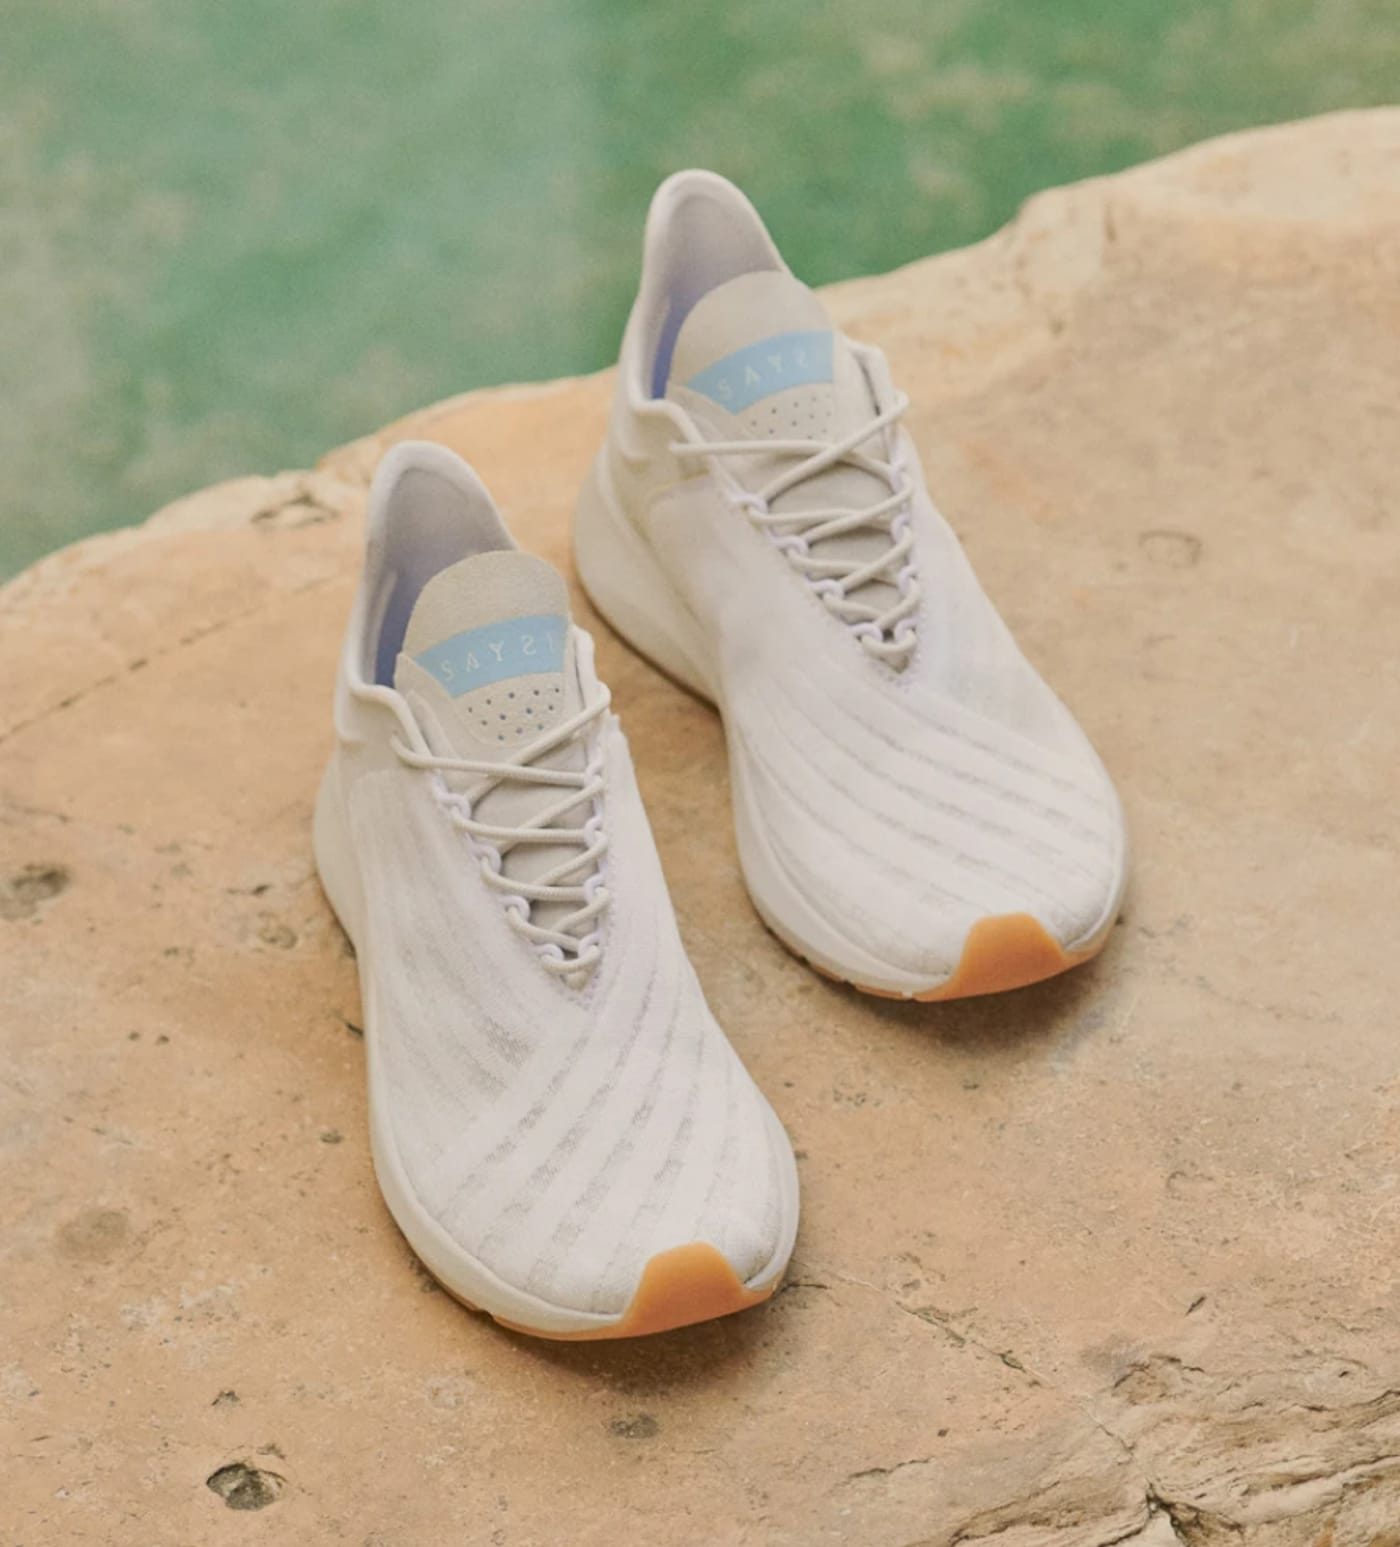 Saysh One Sneaker